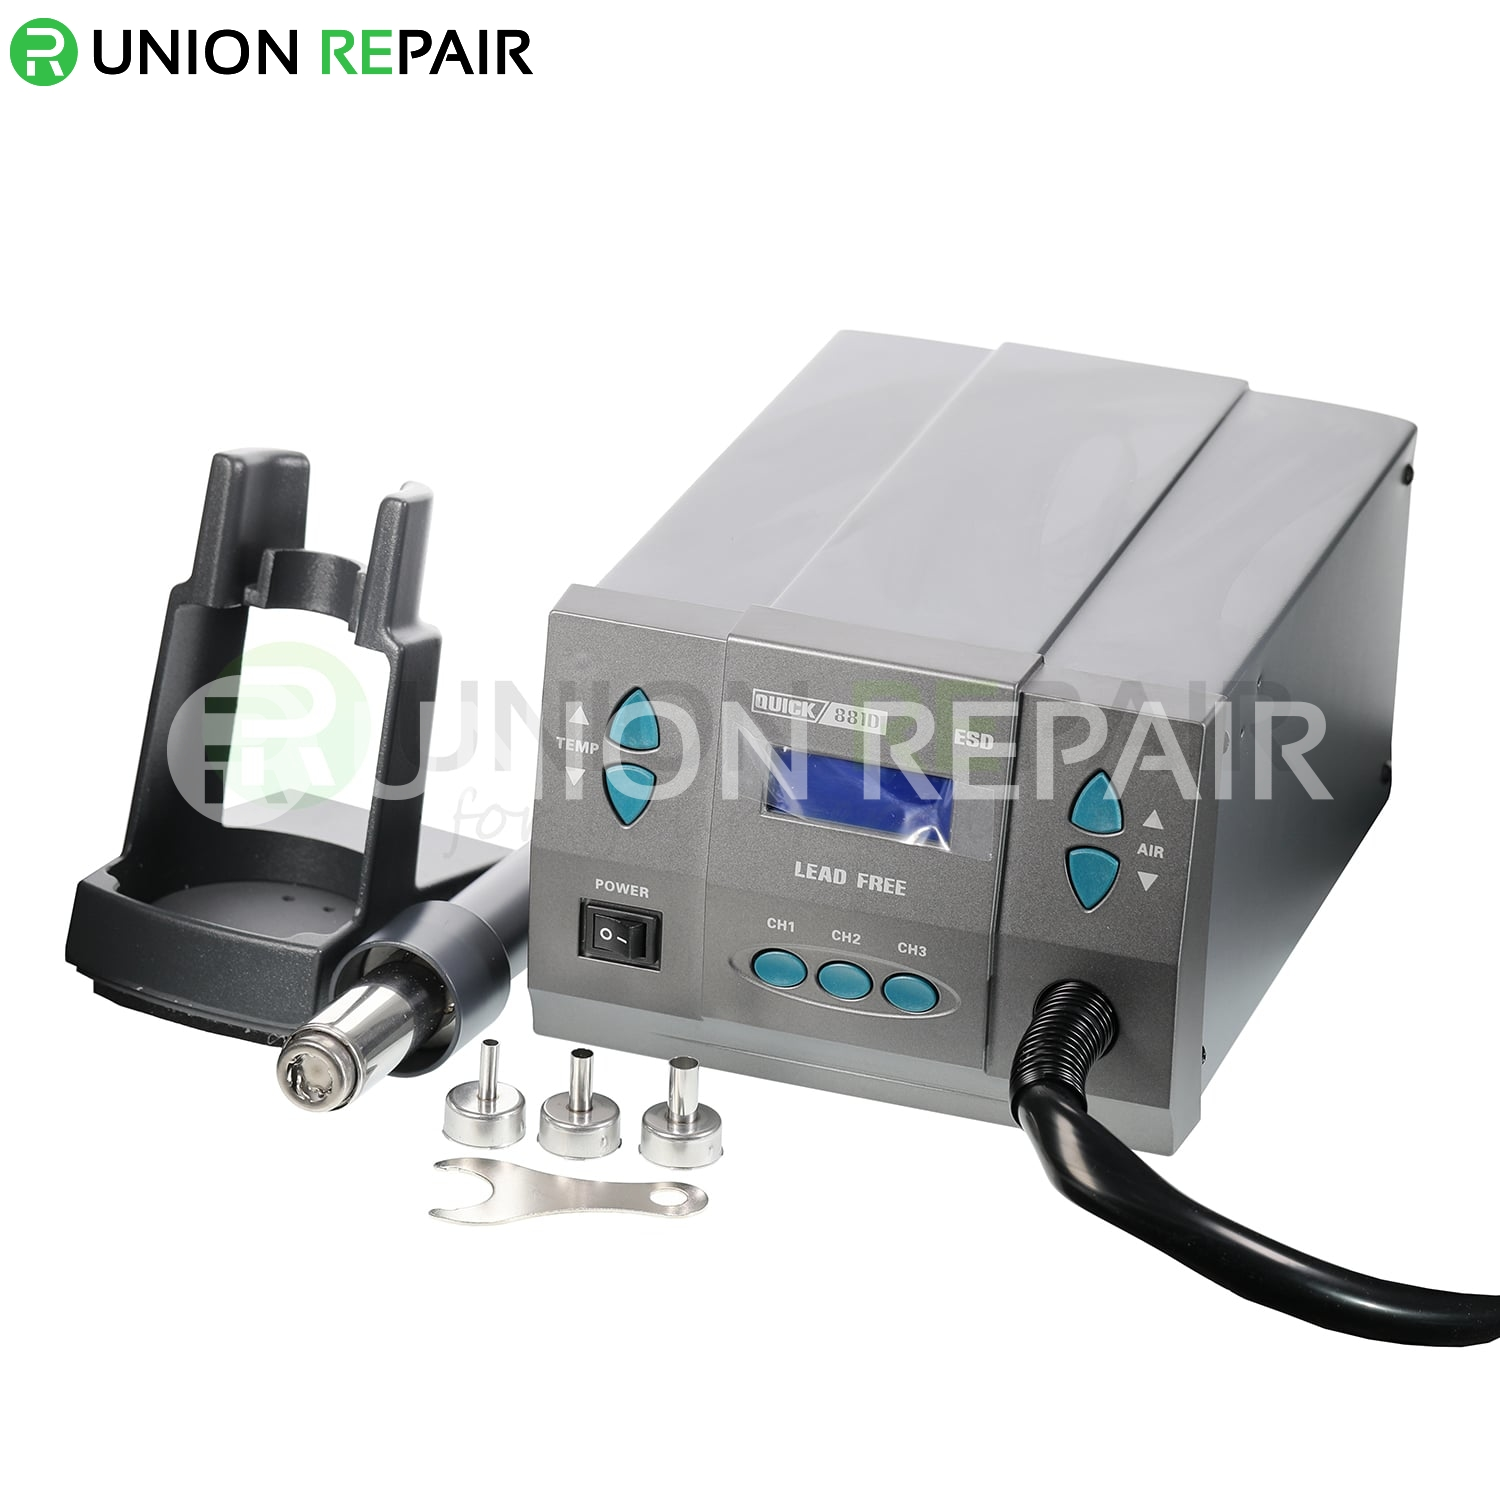 QUICK 881D 1300W Hot Air Desoldering Rework Station